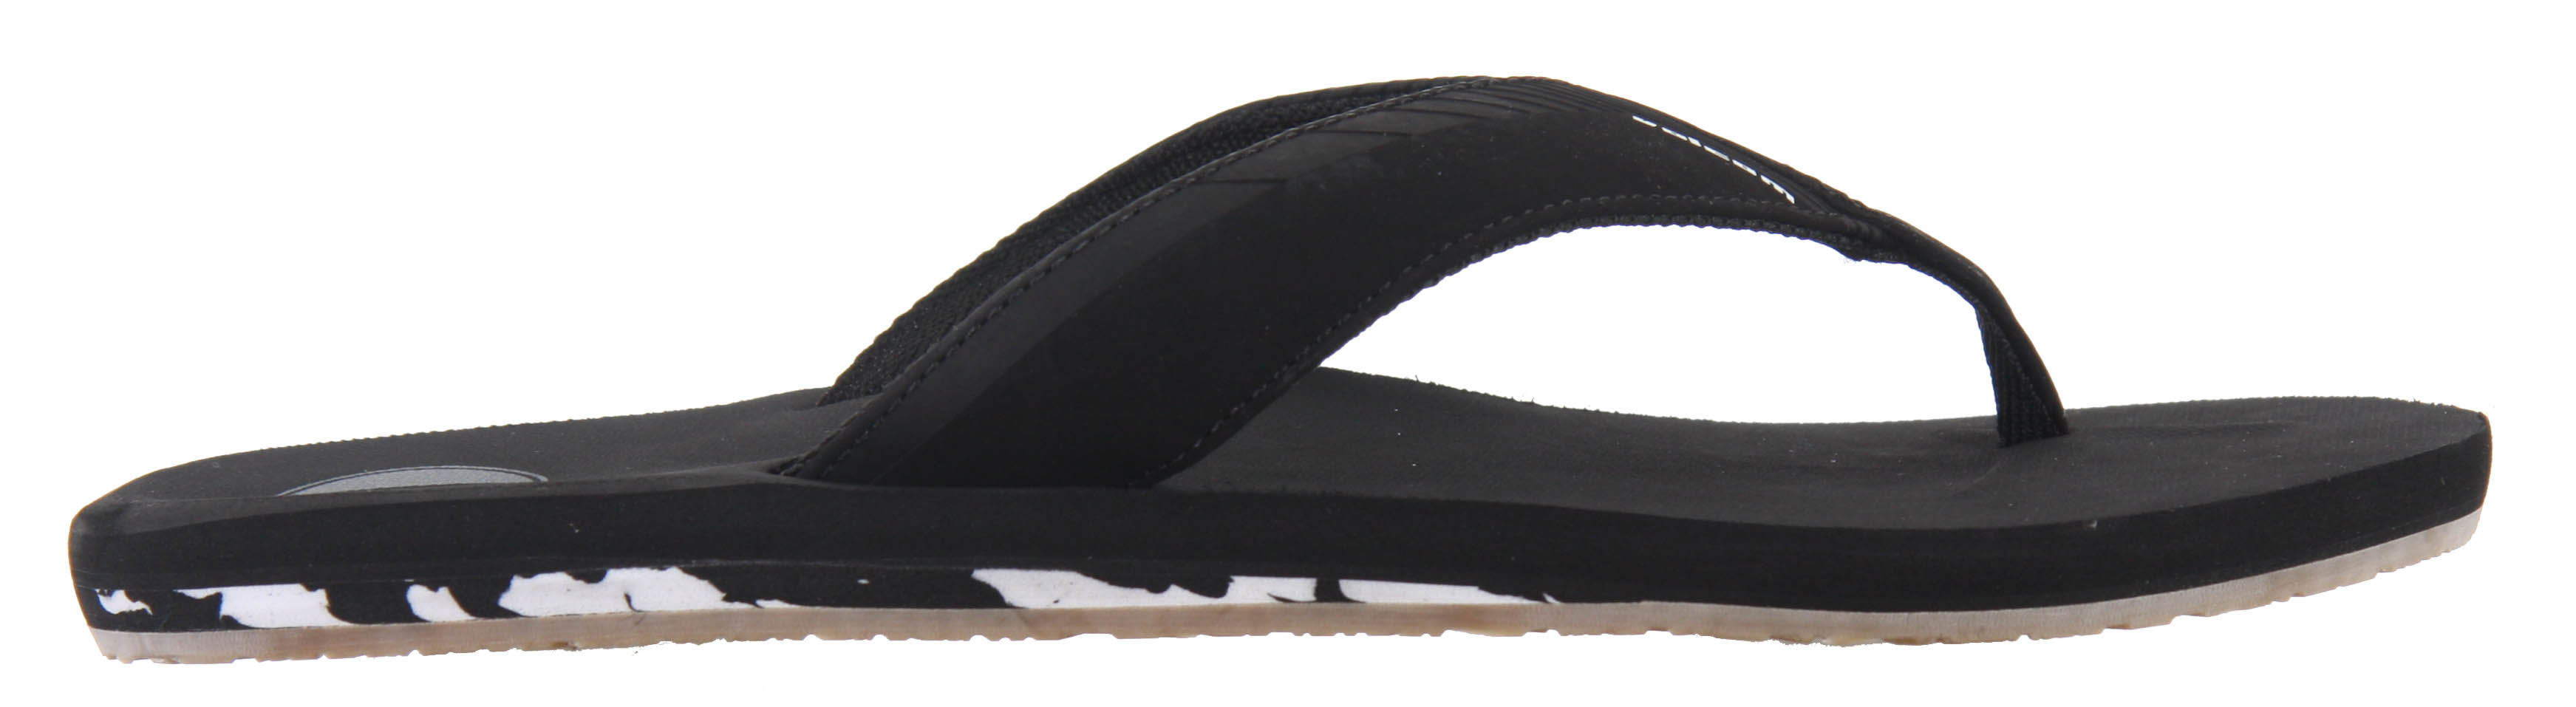 Volcom Vector Creedlers Sandals Black - Men's